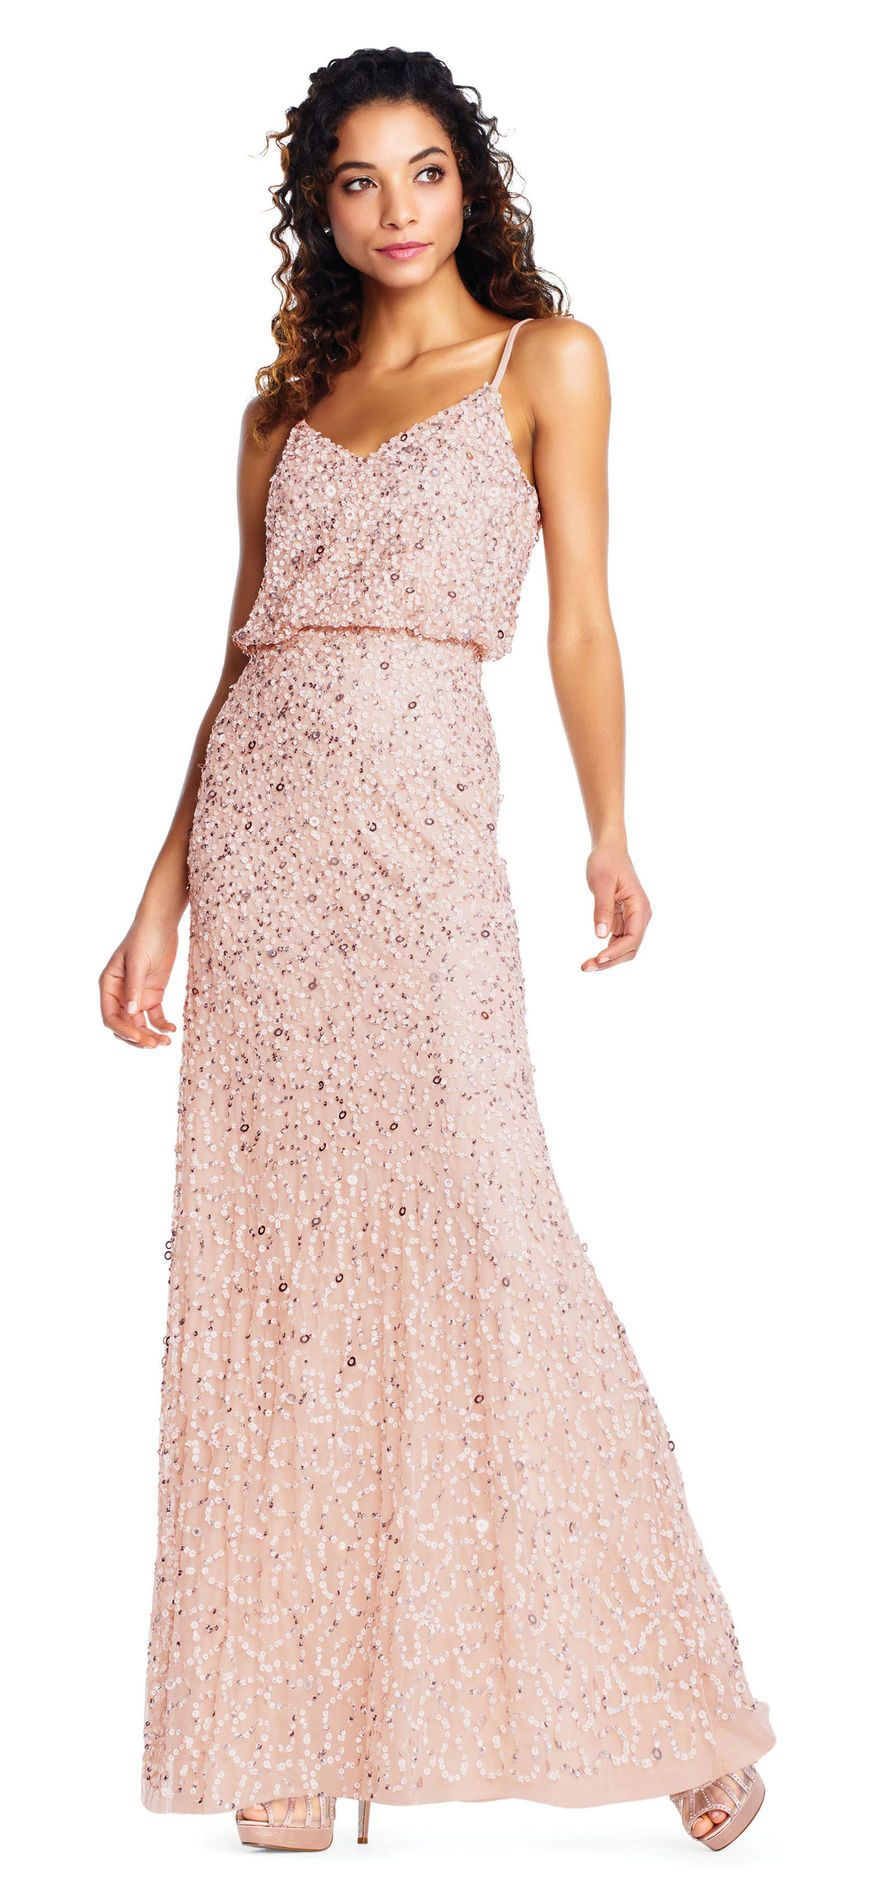 3b2fc8a7ad2 Sequin Beaded Blouson Gown with Spaghetti Straps